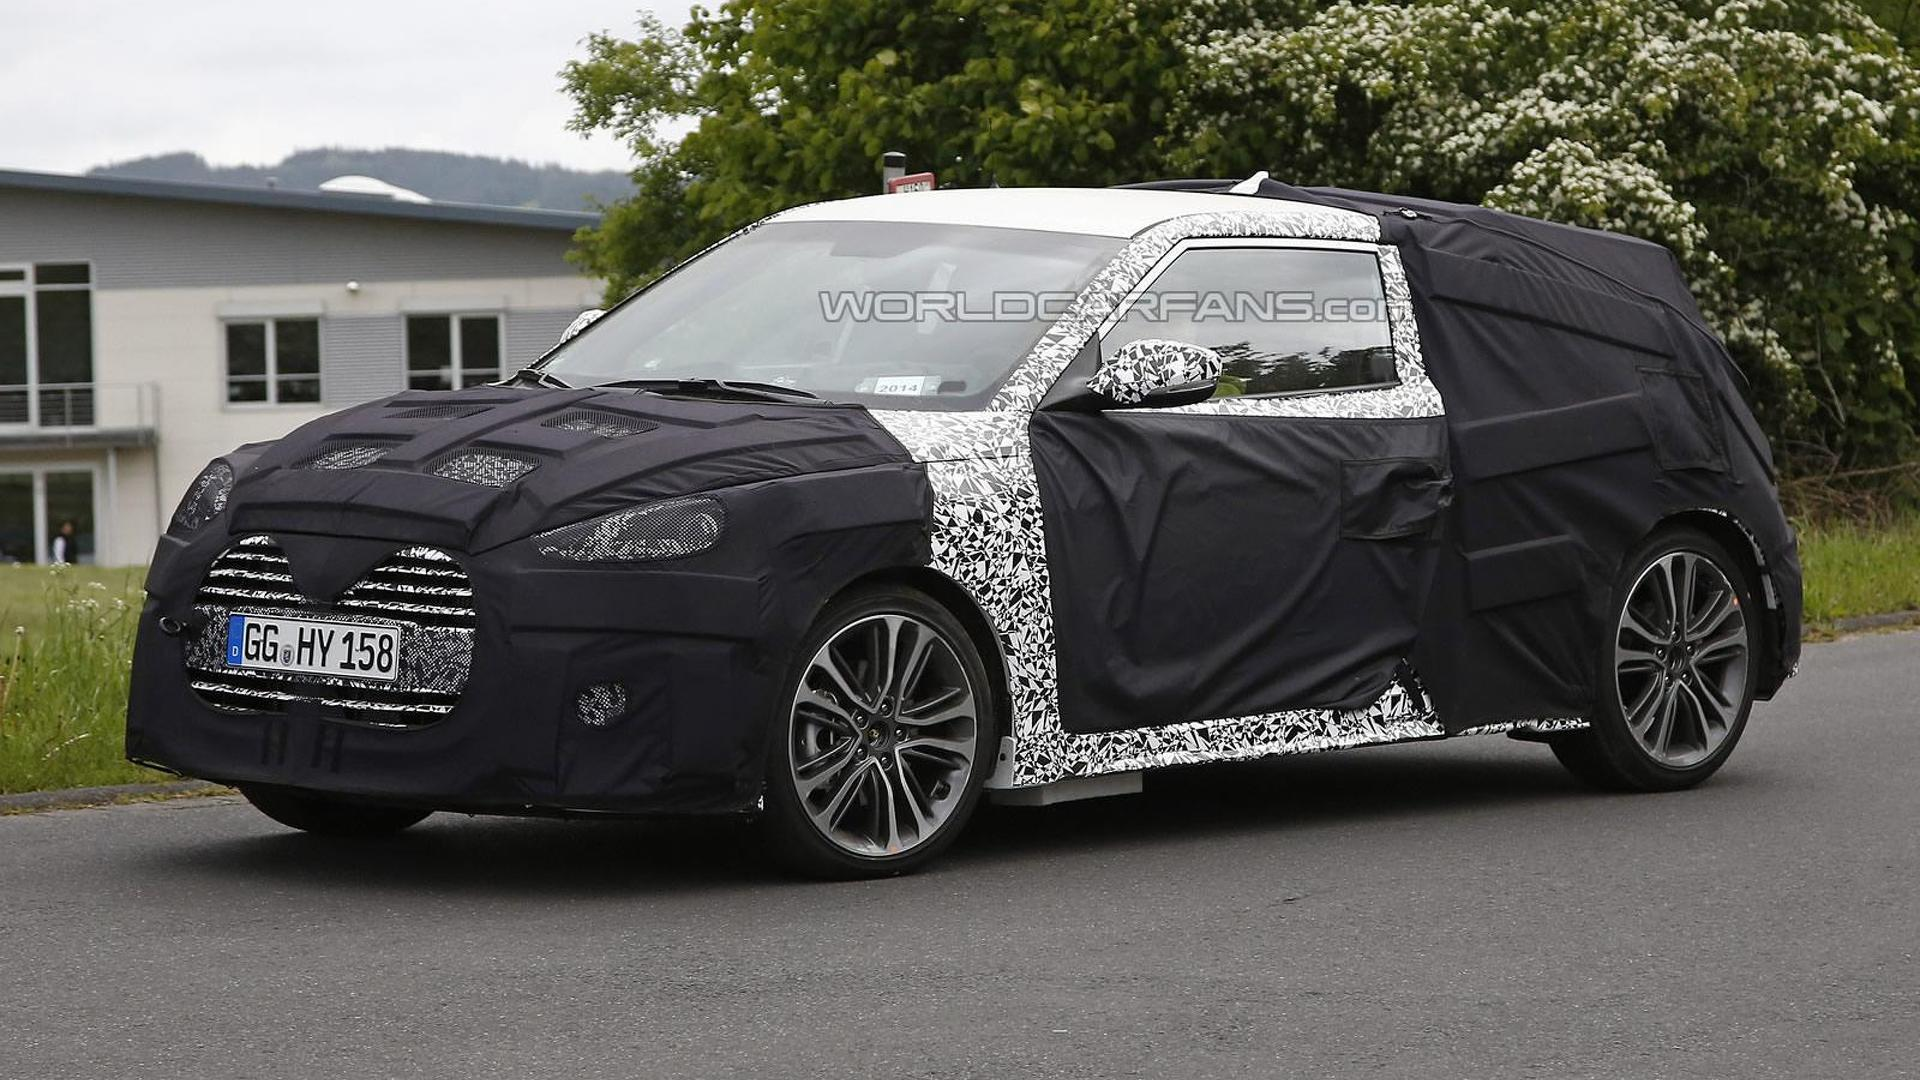 Hyundai Veloster Turbo facelift spied in Germany